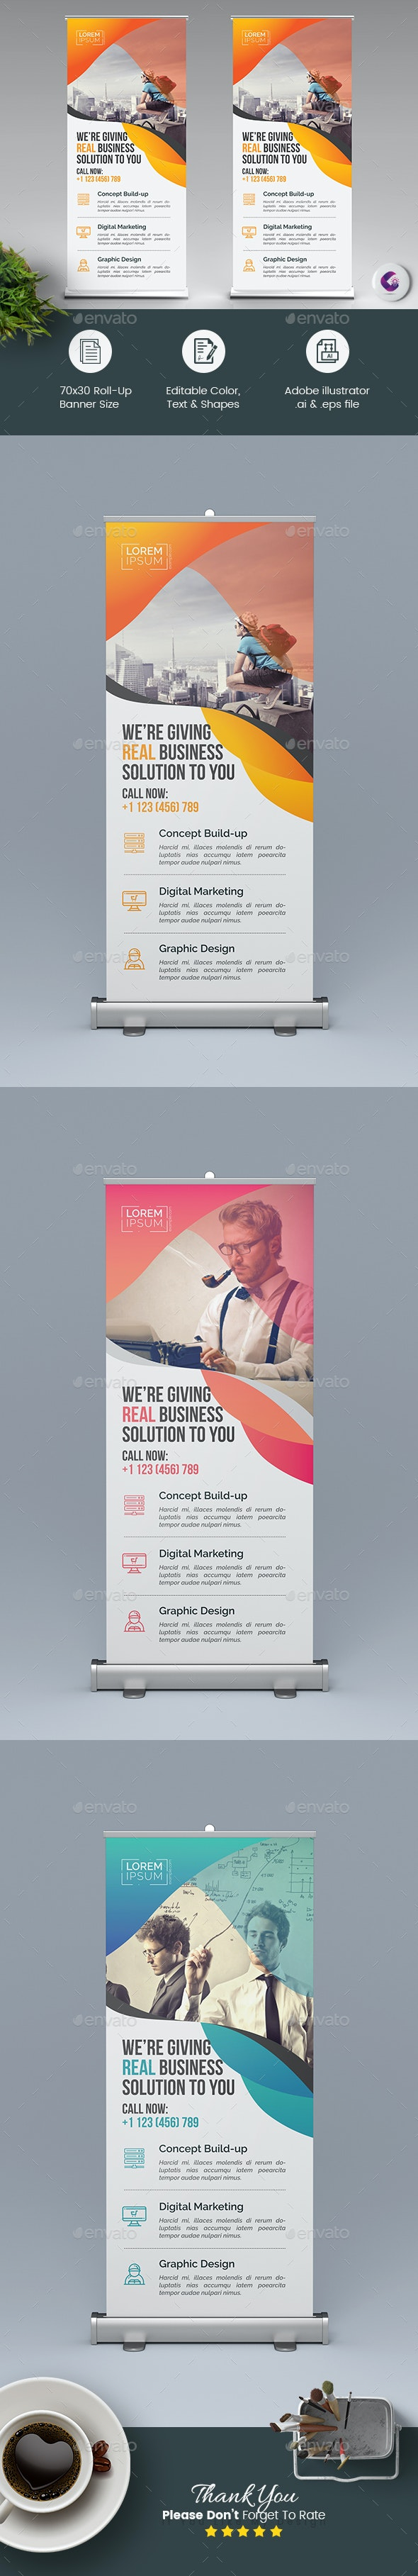 Corporate Roll Up Banner Template - Signage Print Templates